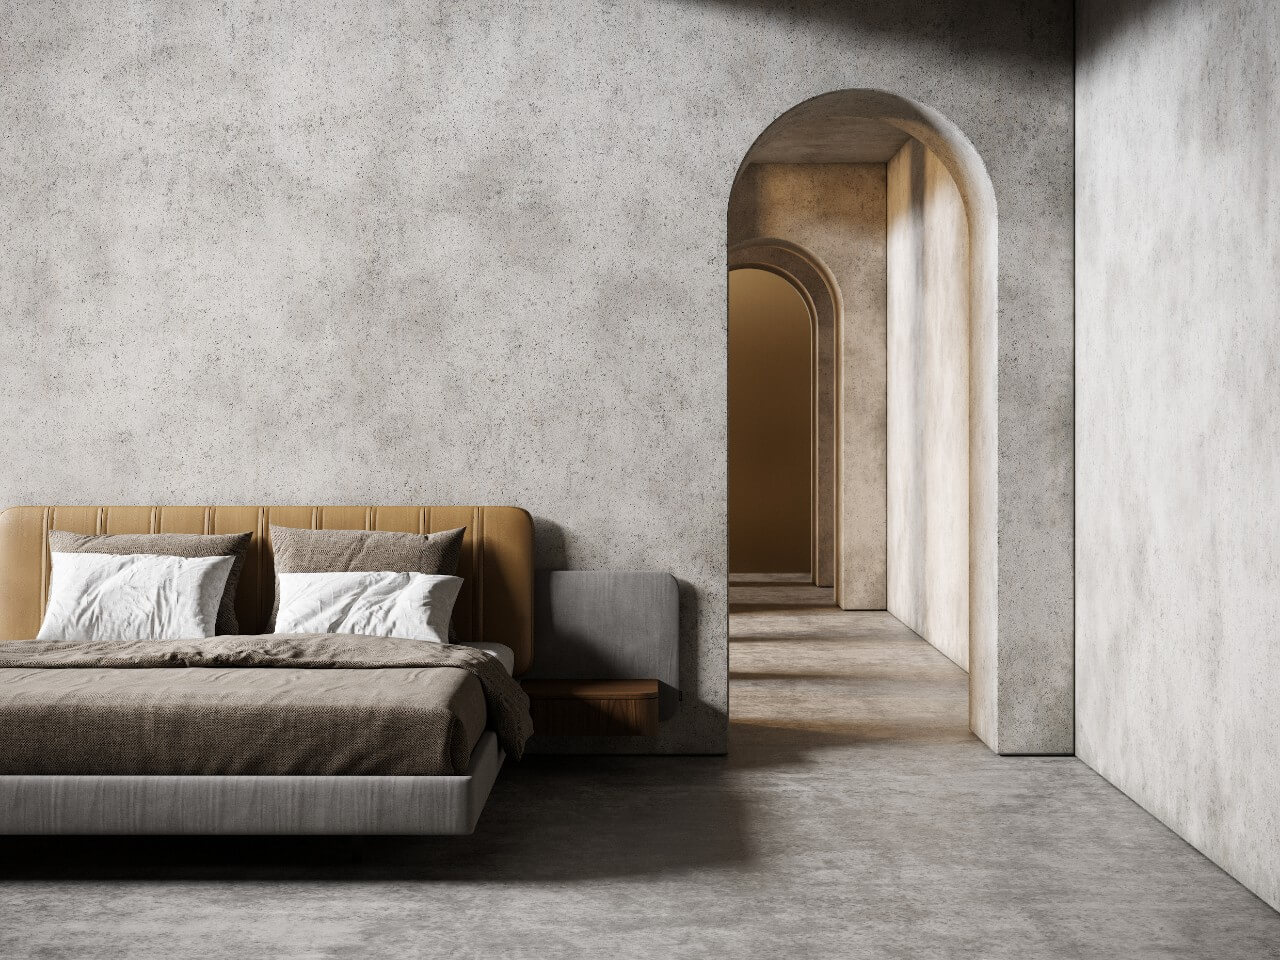 amanda-bed-elemental-collection-domkapa-contract-hotel-master-bedroom-projects-velvet-upholstered-furniture